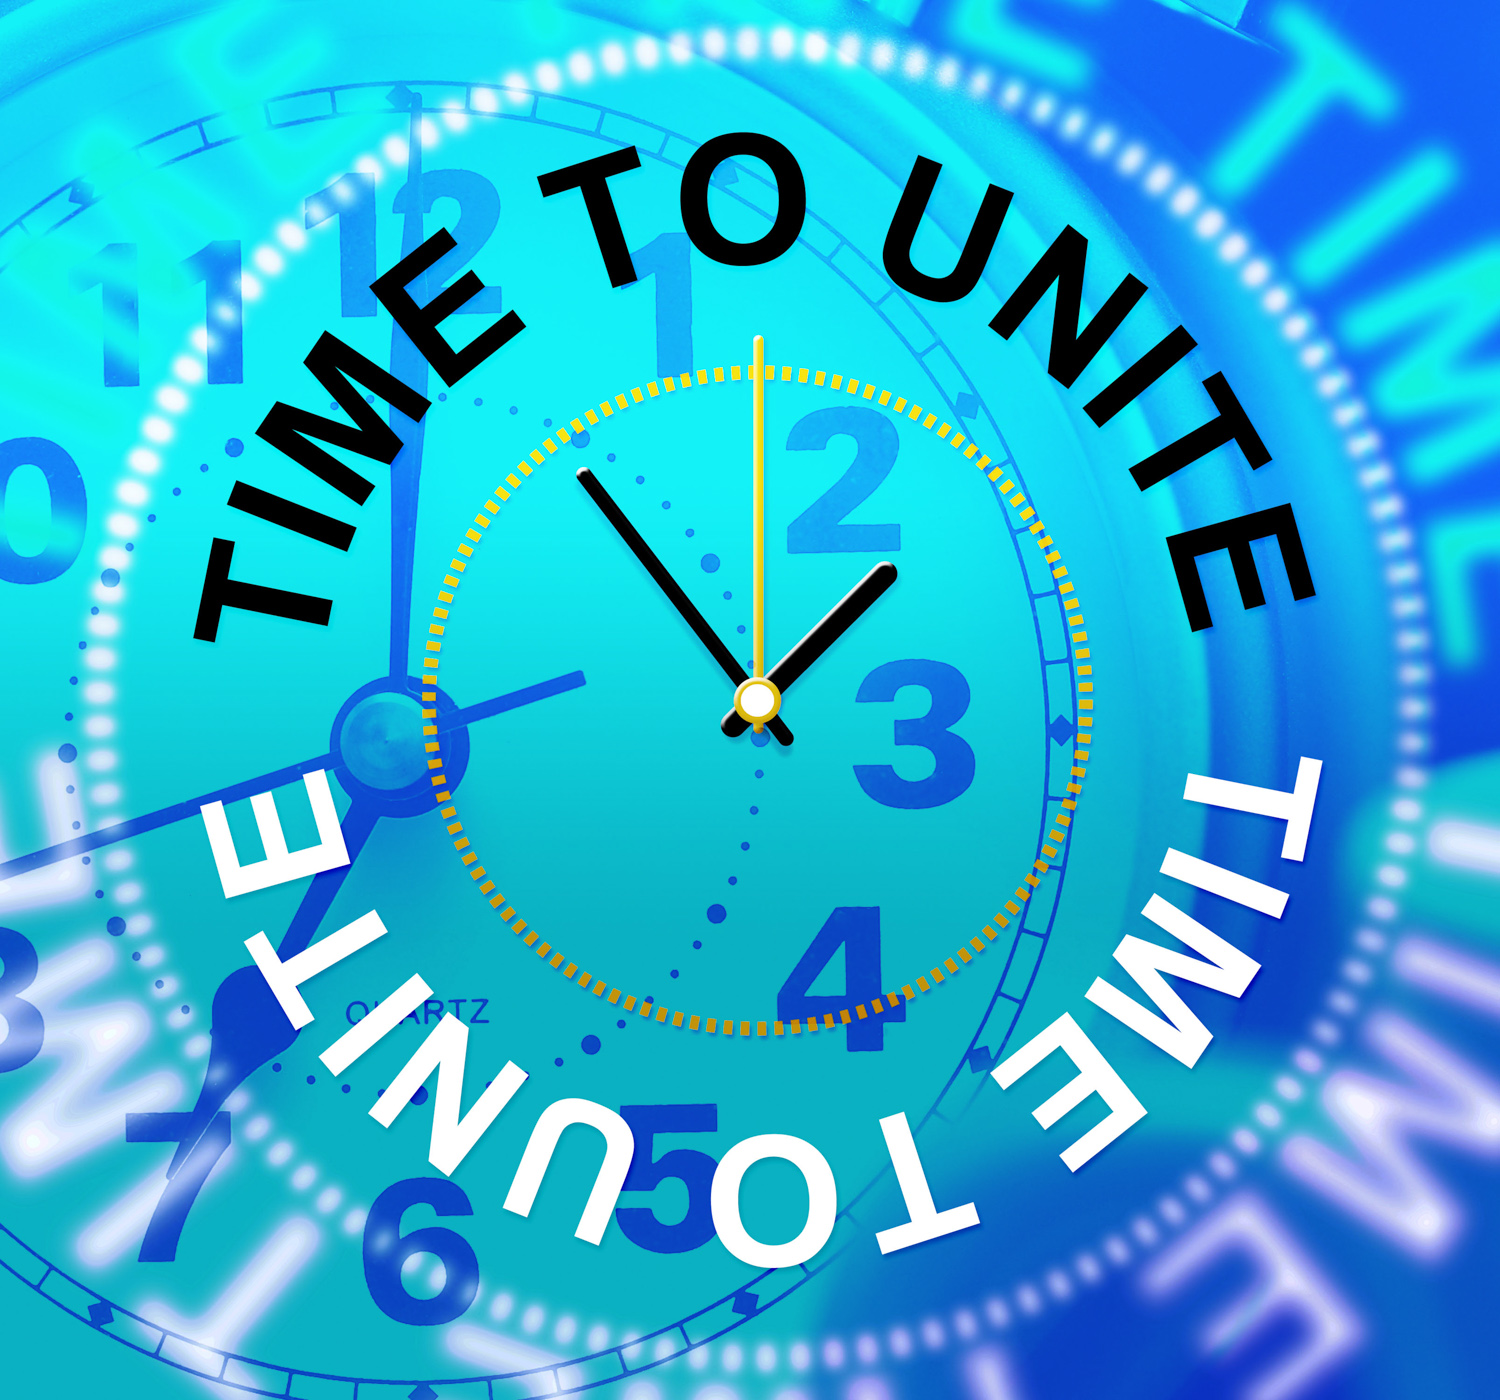 Time To Unite Indicates Team Work And Collaborate, Collaborate, Cooperation, Group, Partner, HQ Photo